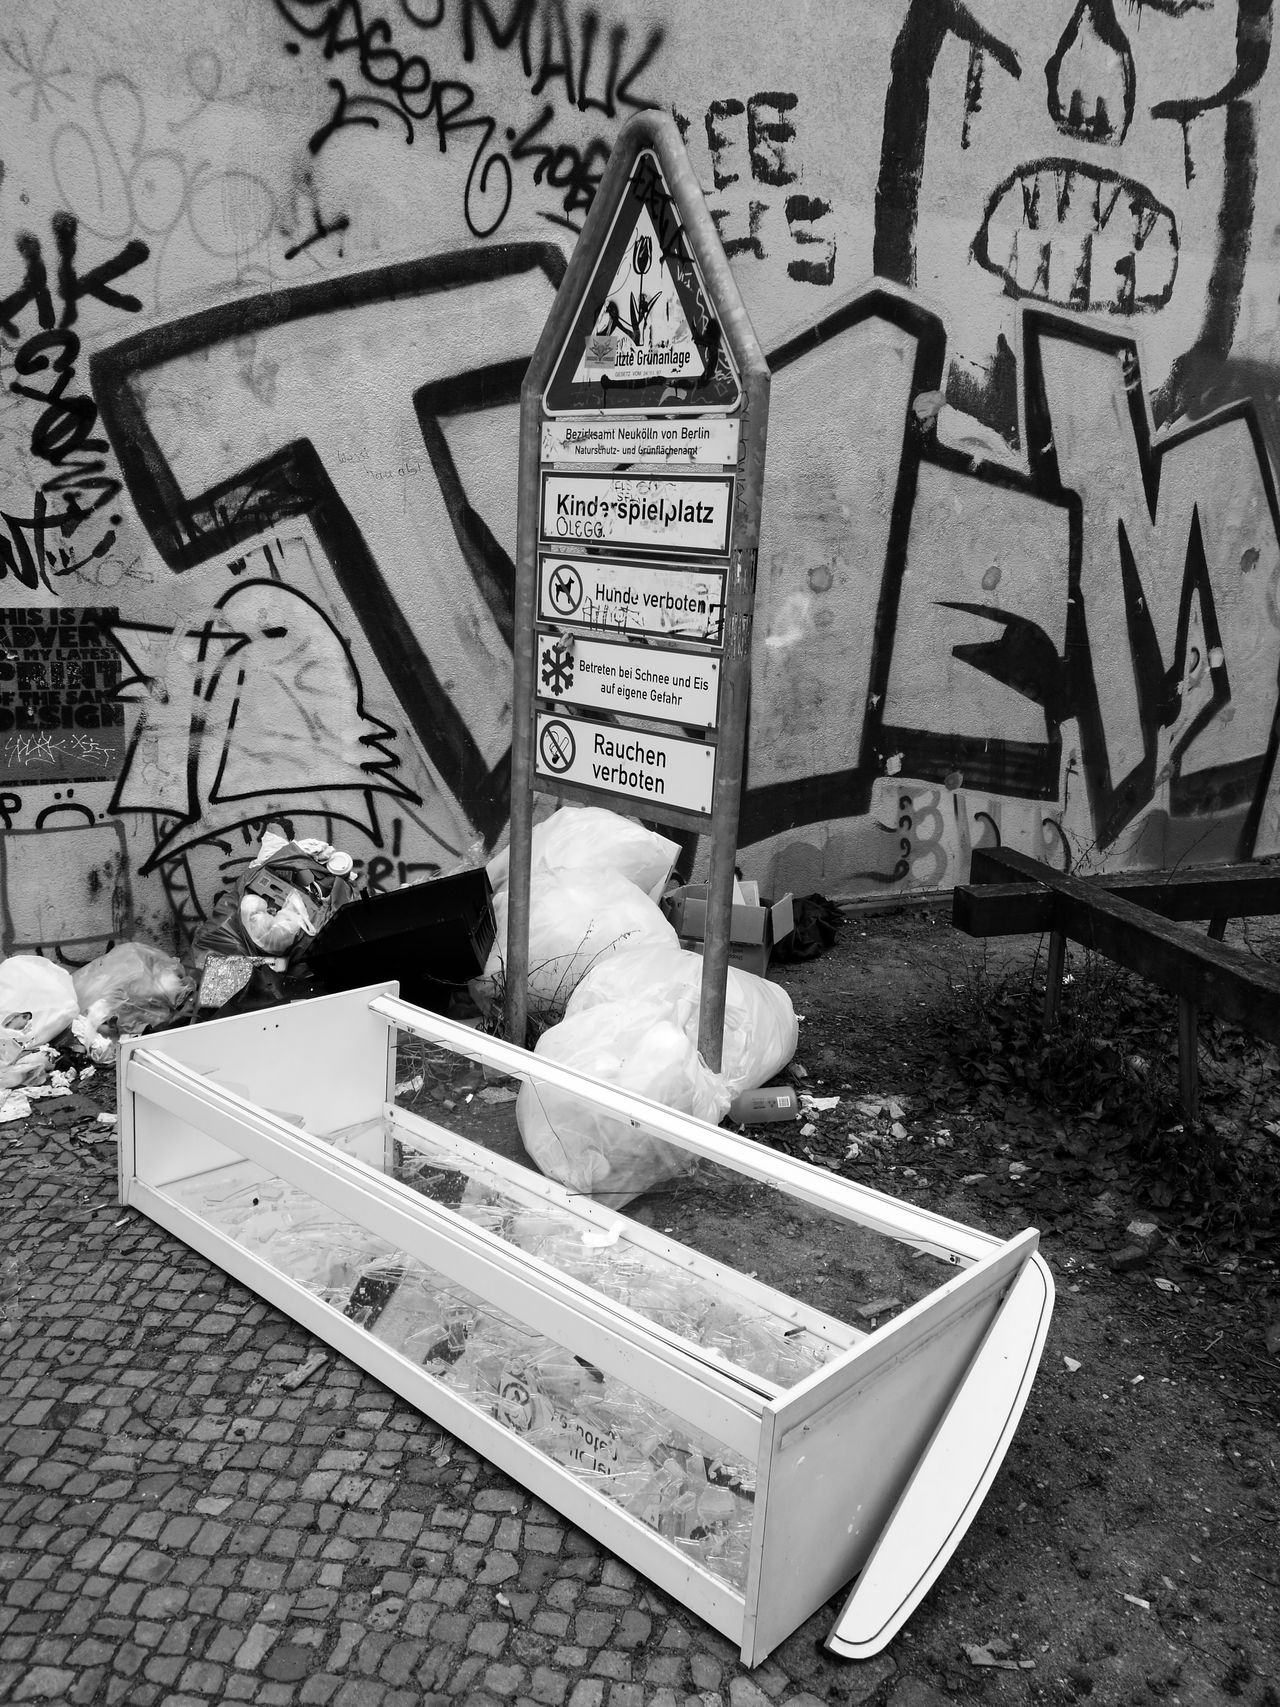 Berlin Berlin Photography Berliner Ansichten Day Dreck Garbage Müll Neukölln Street Text Waste Wasted